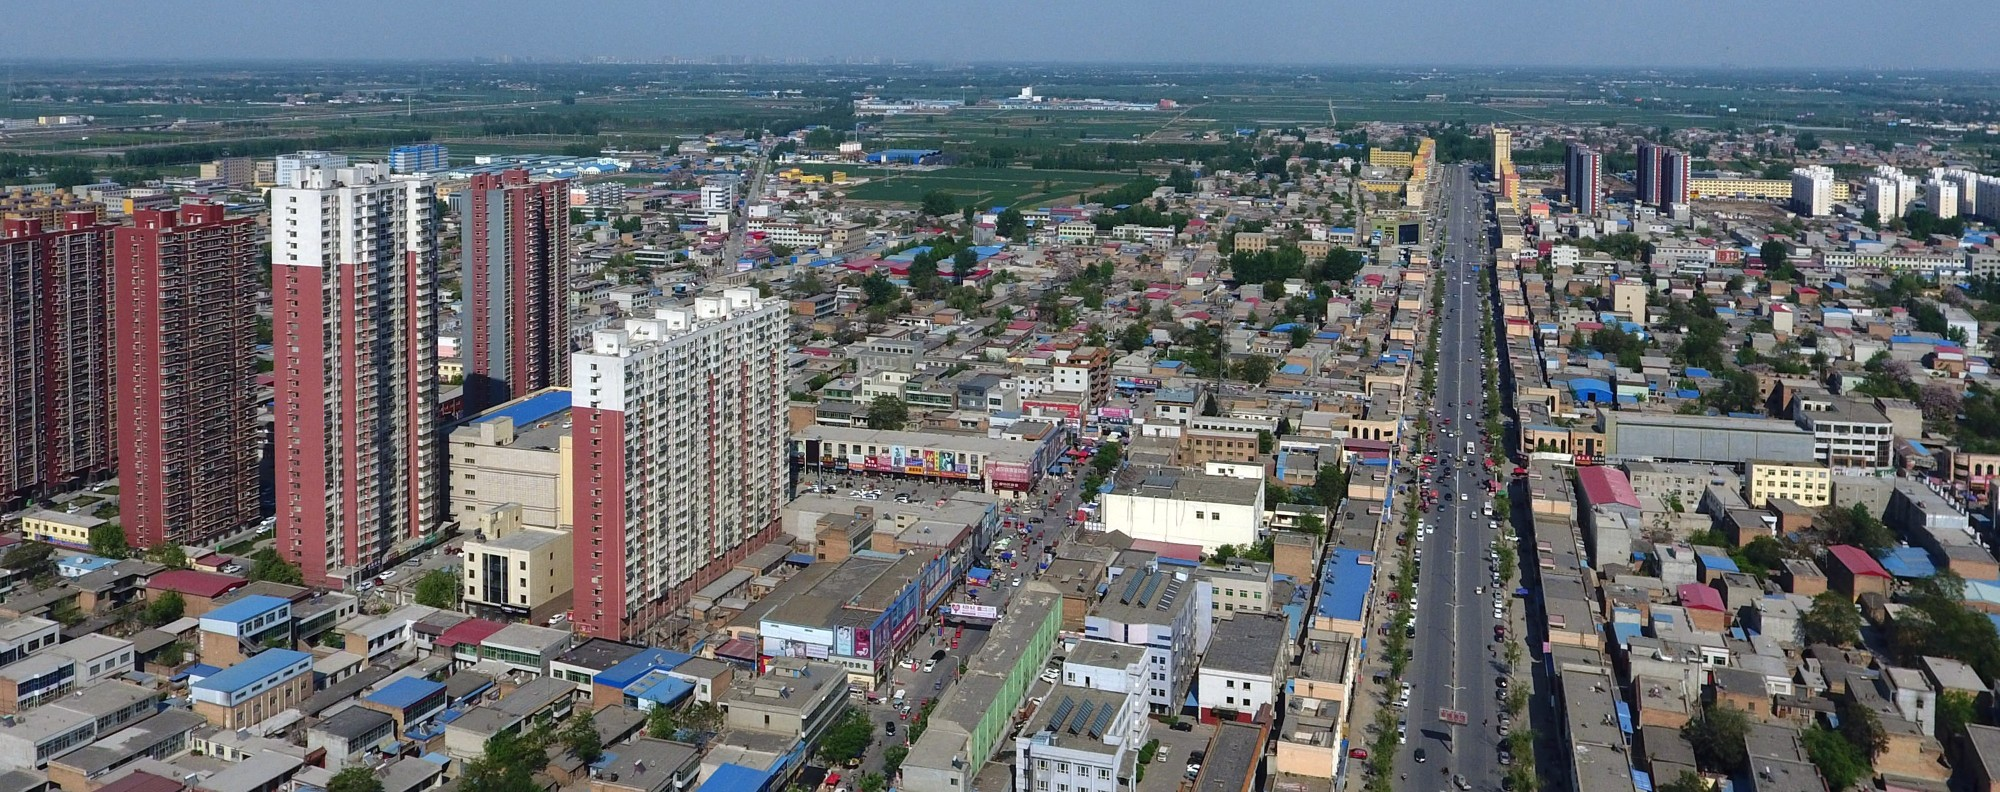 Xiongan New Area will be located in Hebei Province. Photo: Xinhua